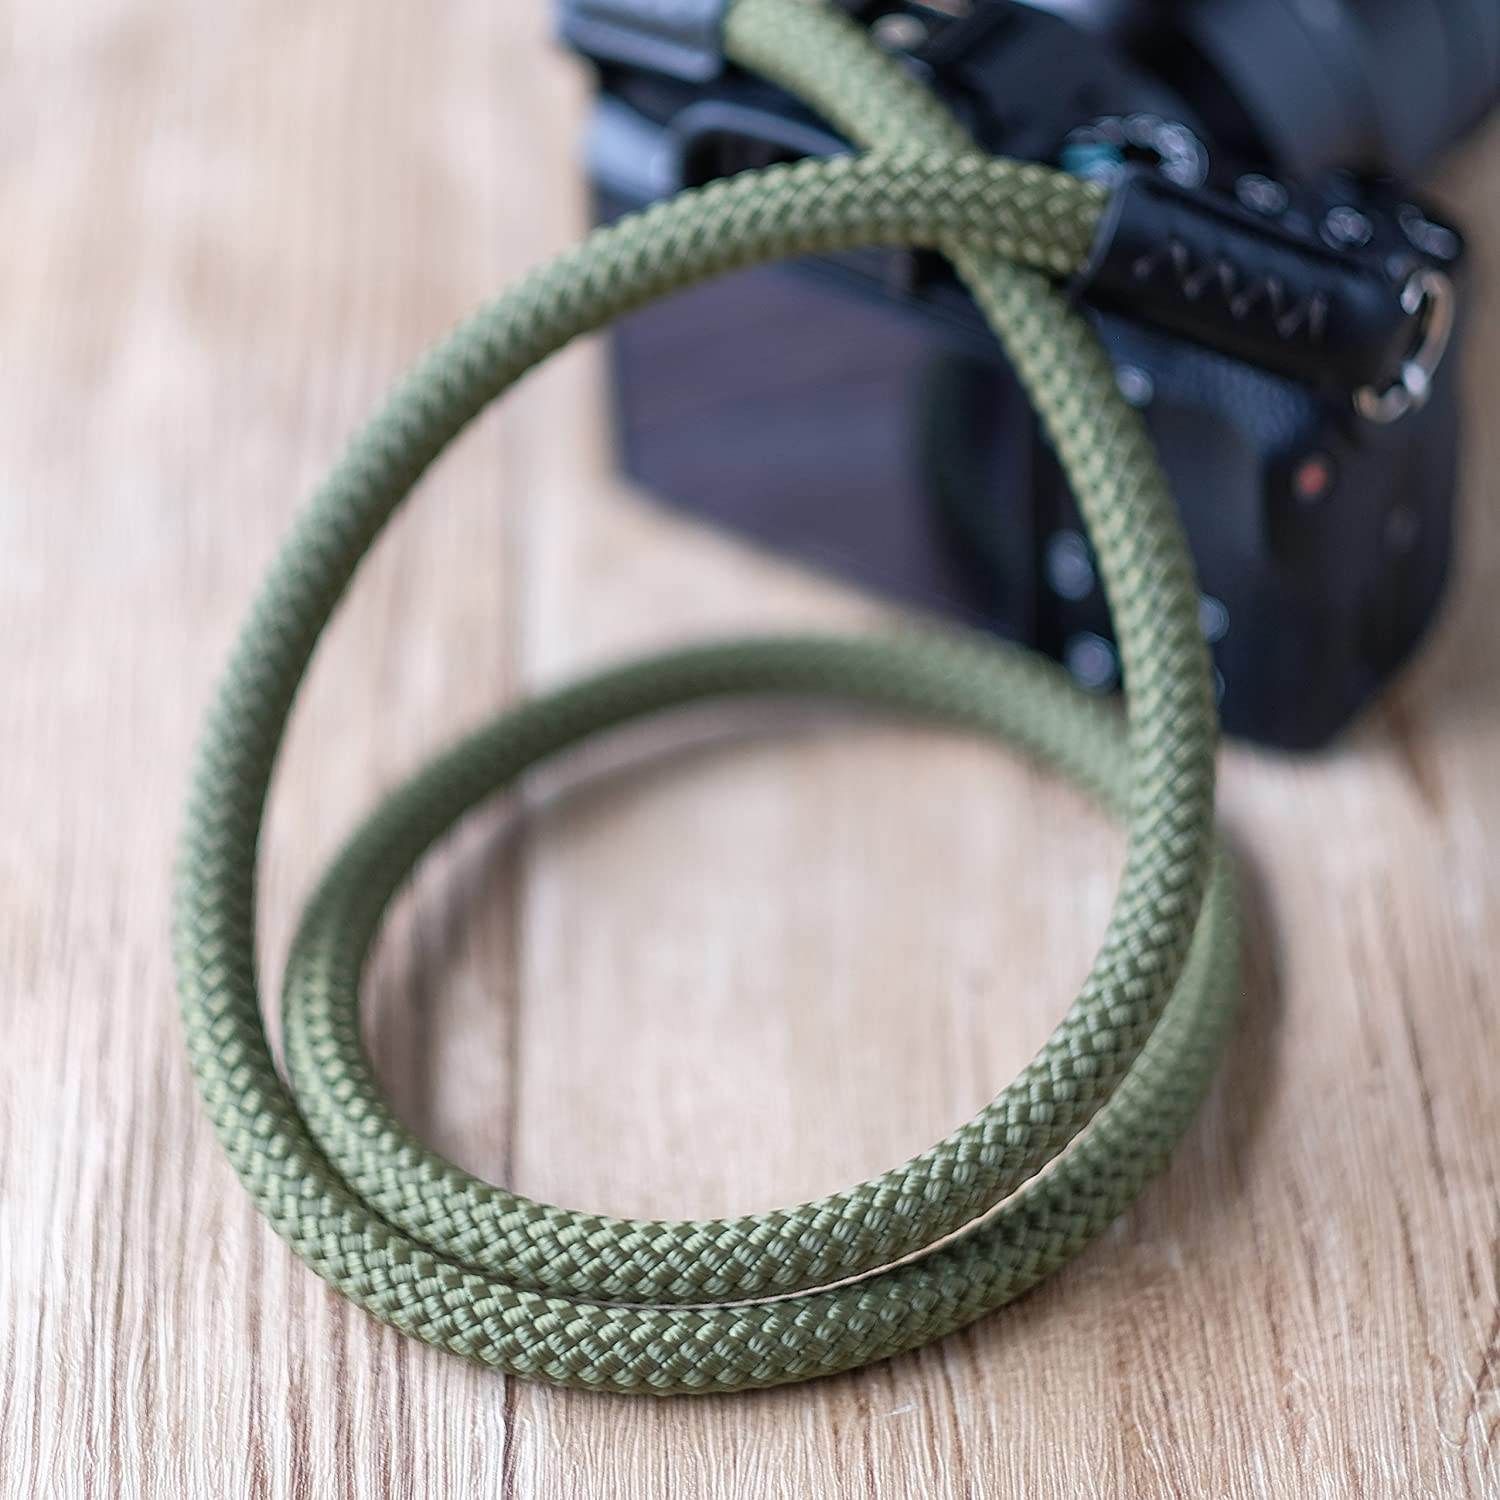 Red L=100cm A-MoDe Climbing Rope 10mm Handmade Camera Neck Strap Beal SingingRock Rope for Leica Nikon Fuji Canon Sony